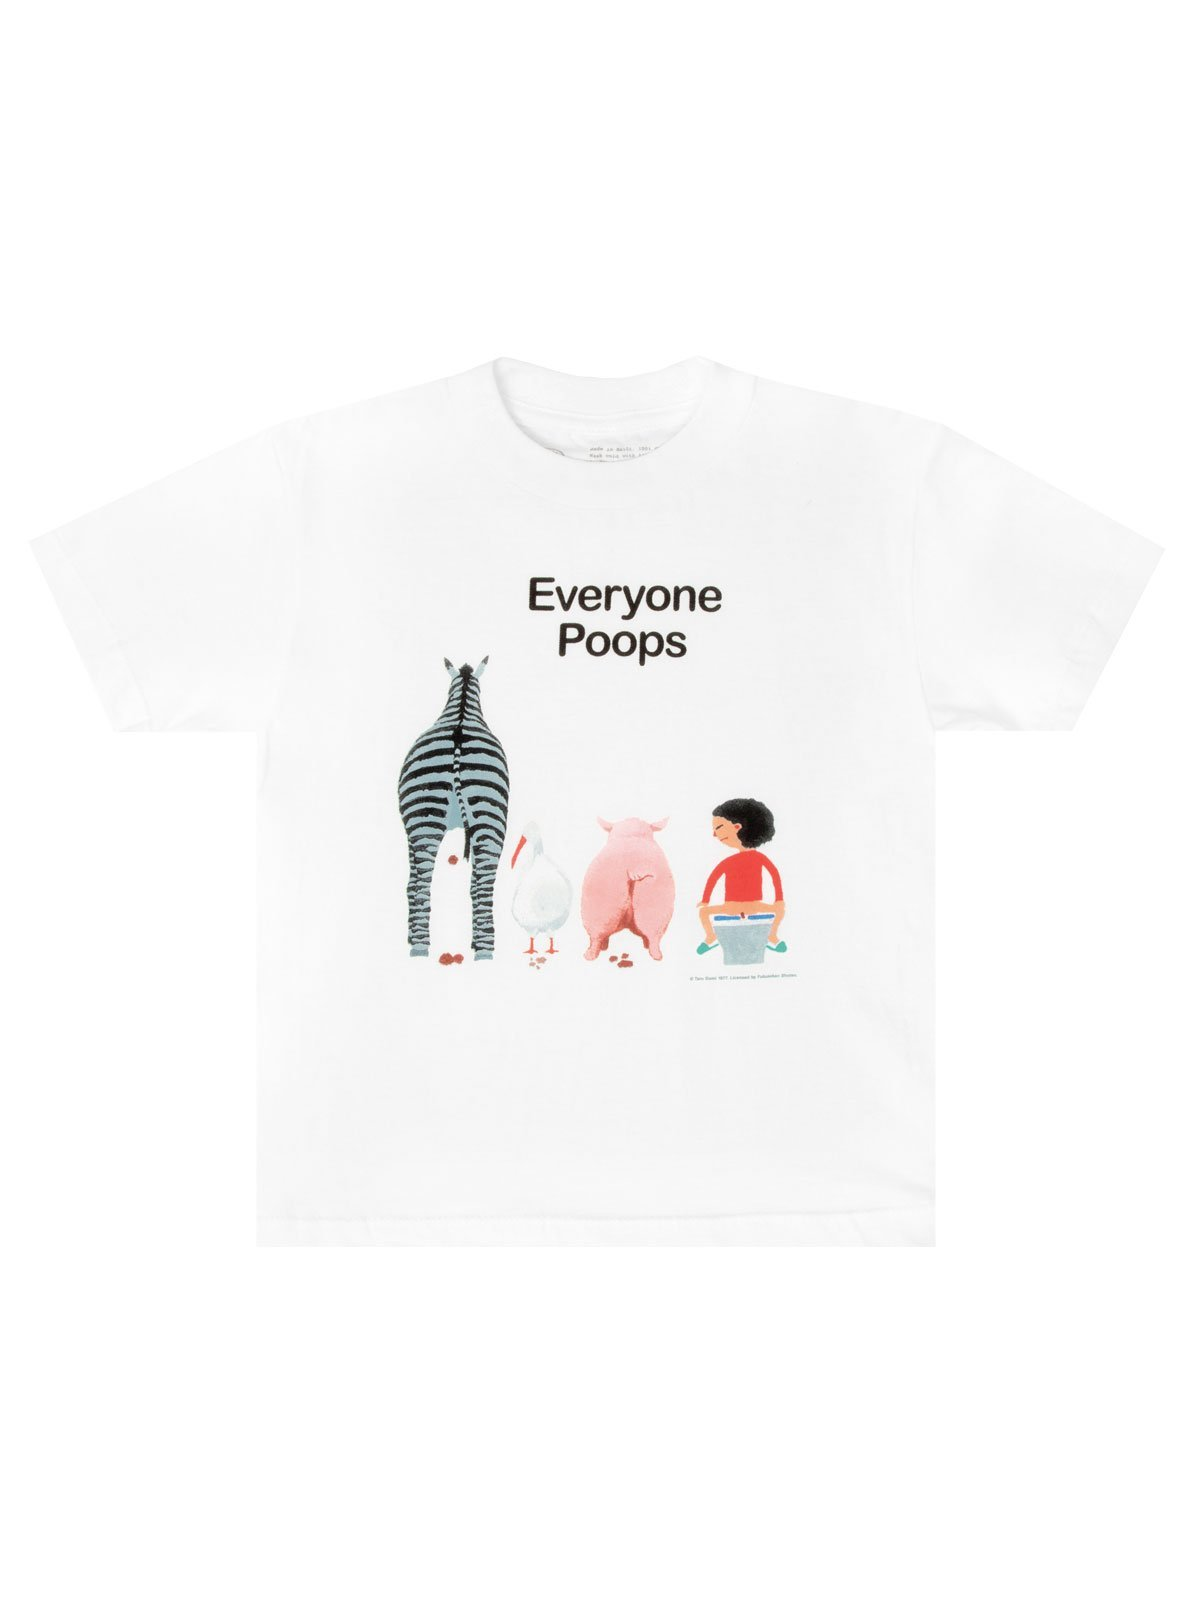 Out of Print: Everyone Poops Childrens Tee - 6/7 yrs image